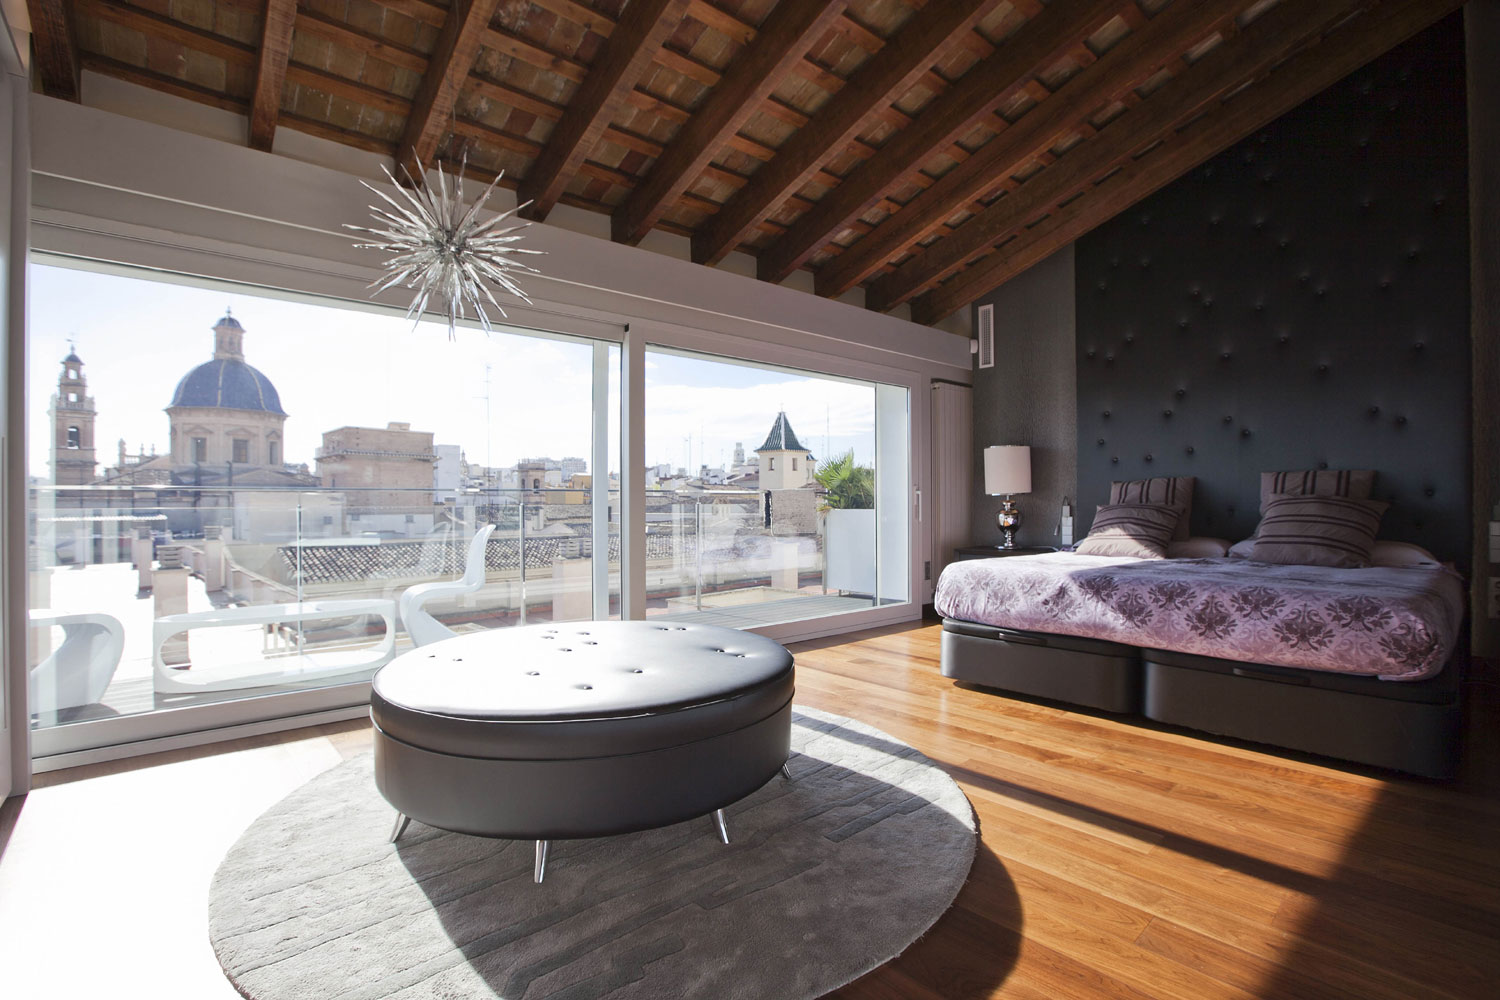 In Valencia, Spain, this designer penthouse offers luxury living spaces as well as spectacular views of the city's famous monuments.